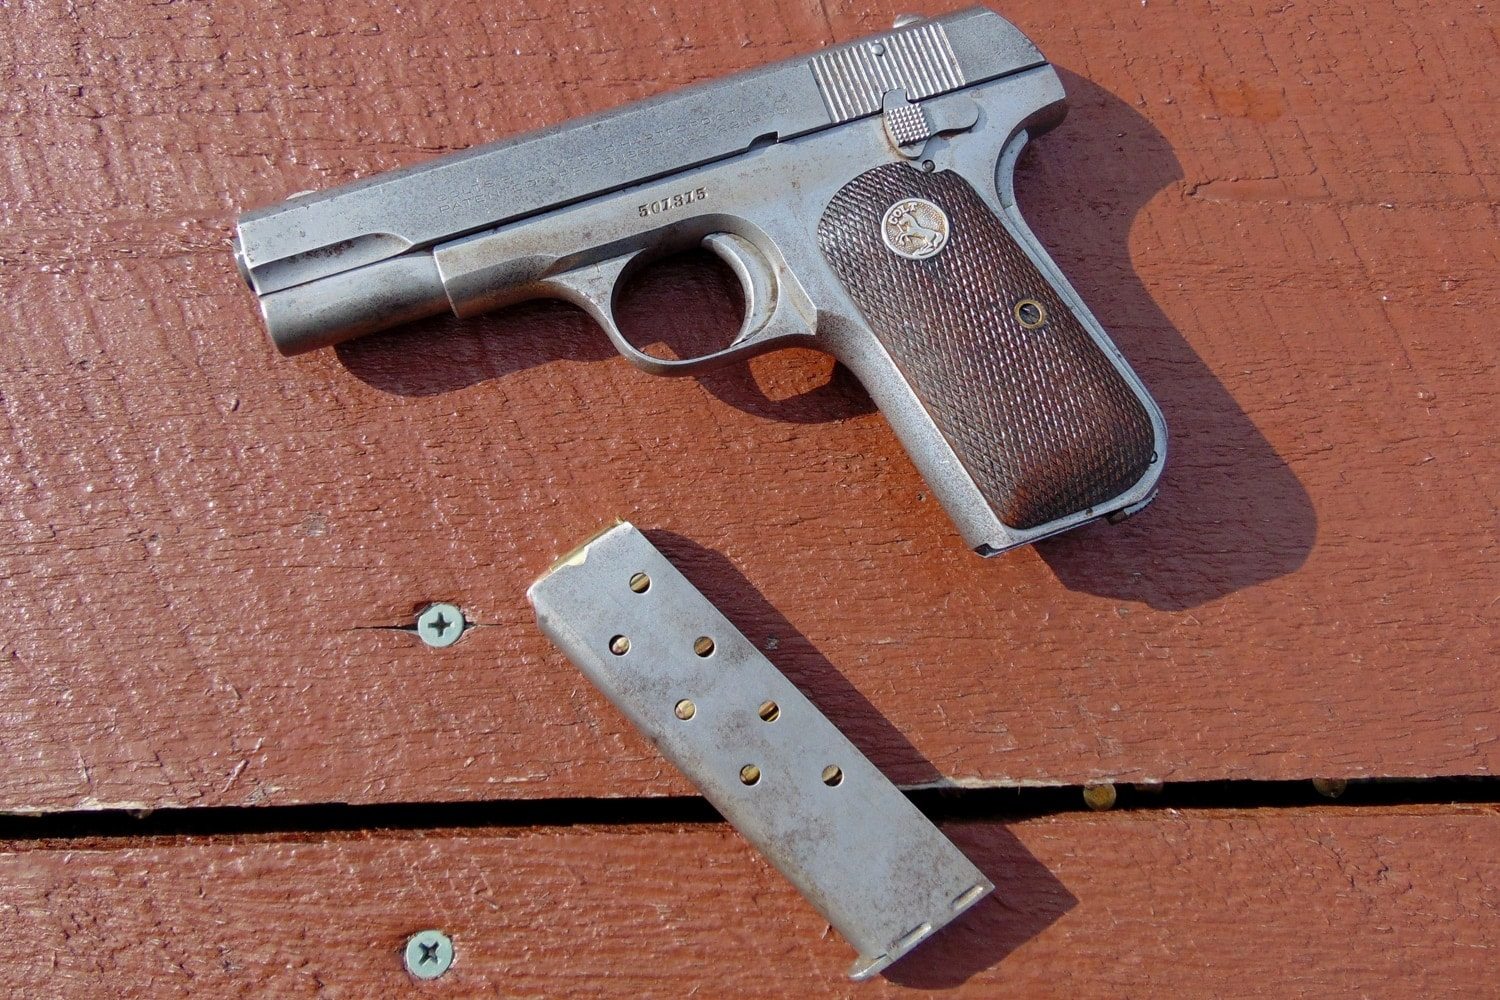 The Colt 1903 pistol holds eight rounds in the magazine. (Photo: David LaPell)